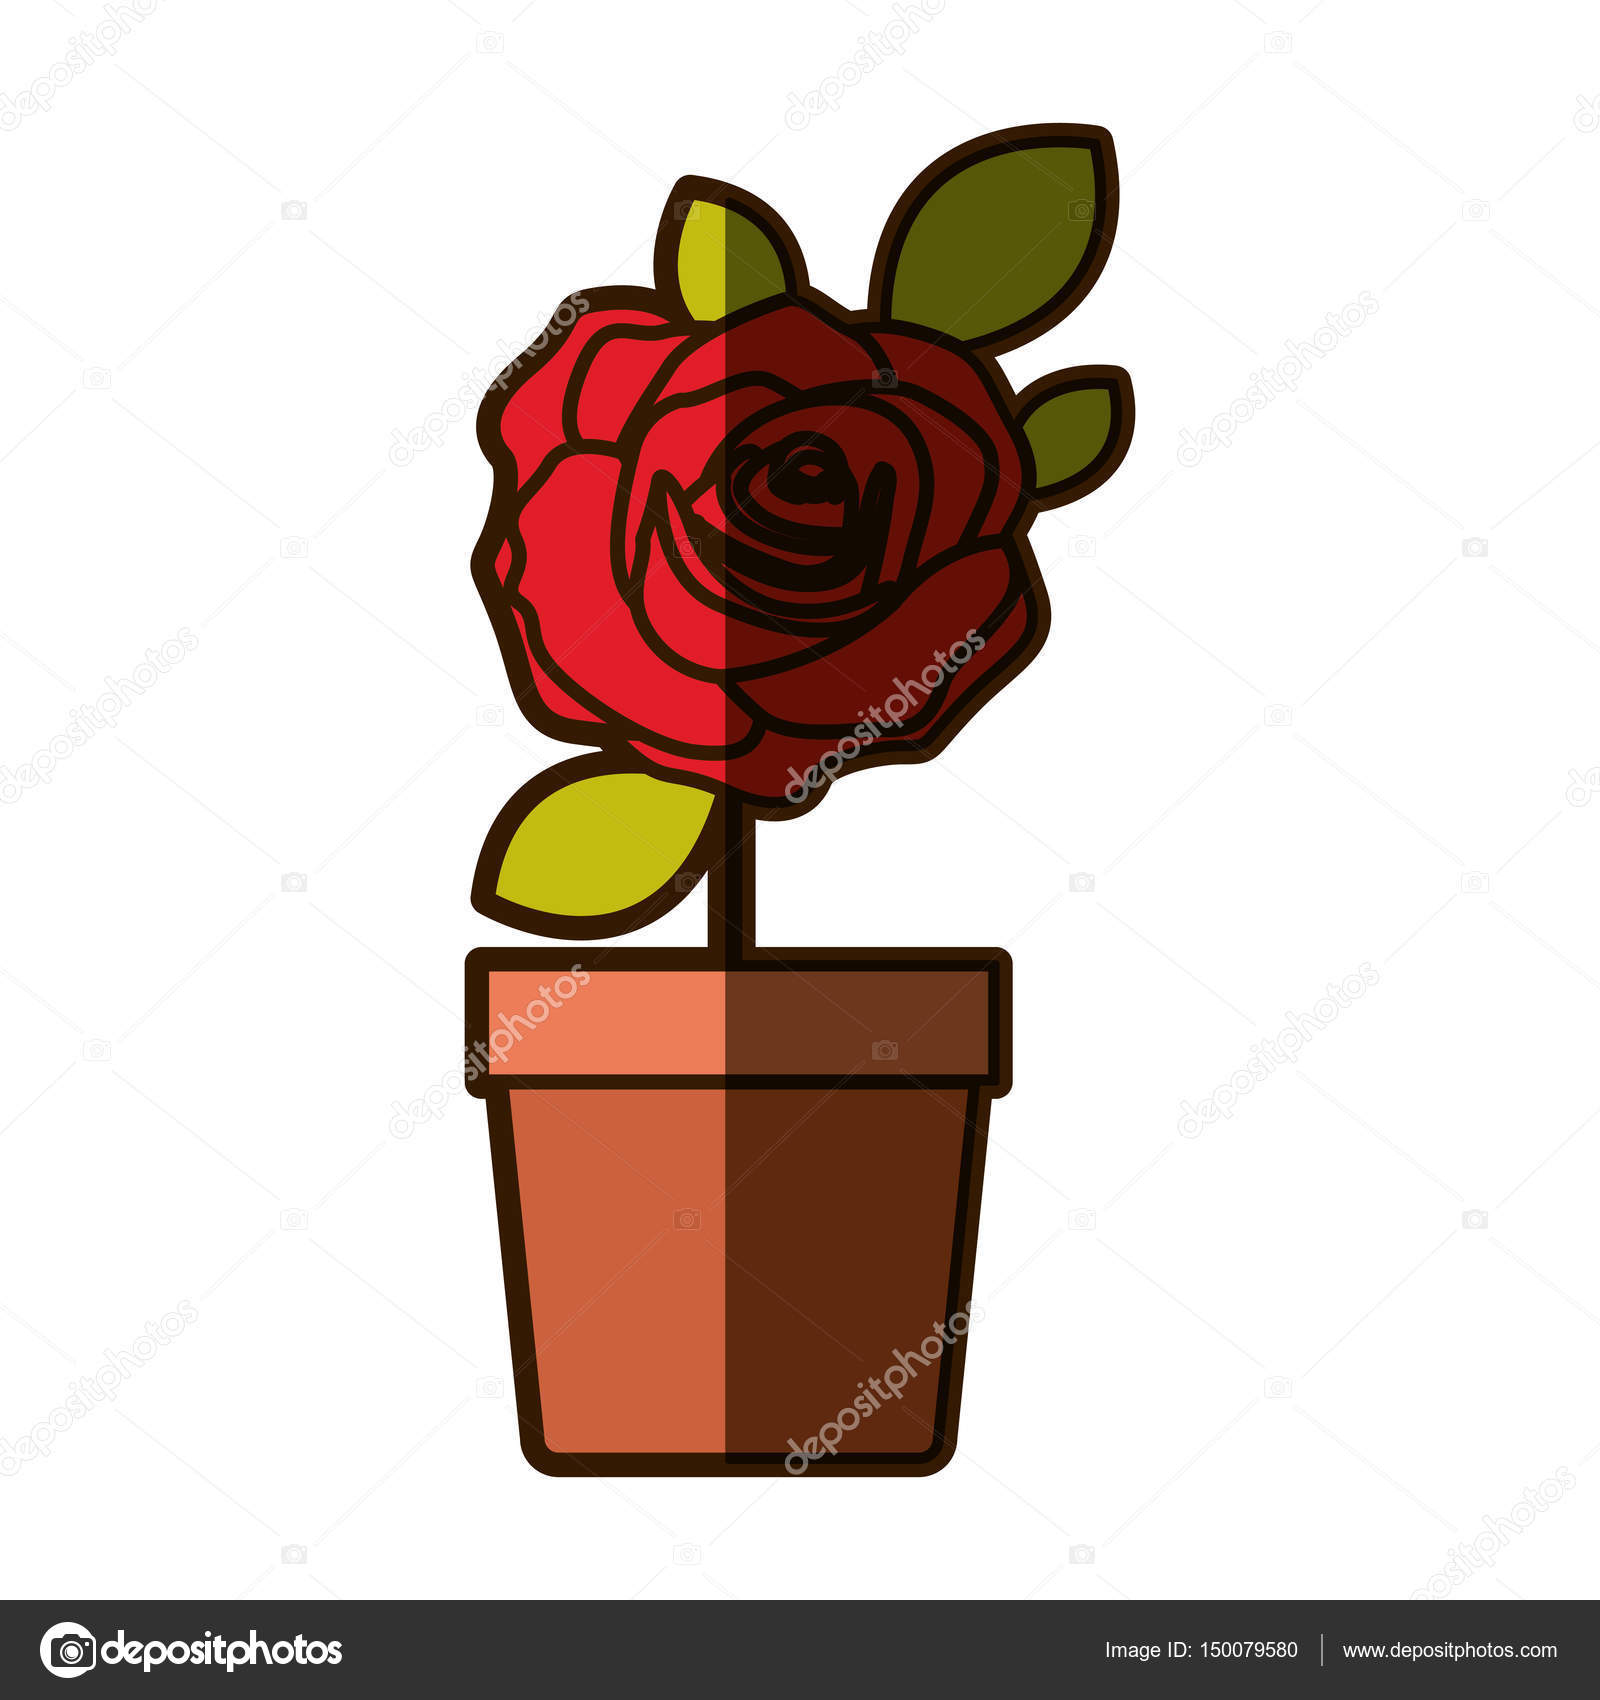 Flower Pot Drawing Images at GetDrawings.com | Free for personal use ...